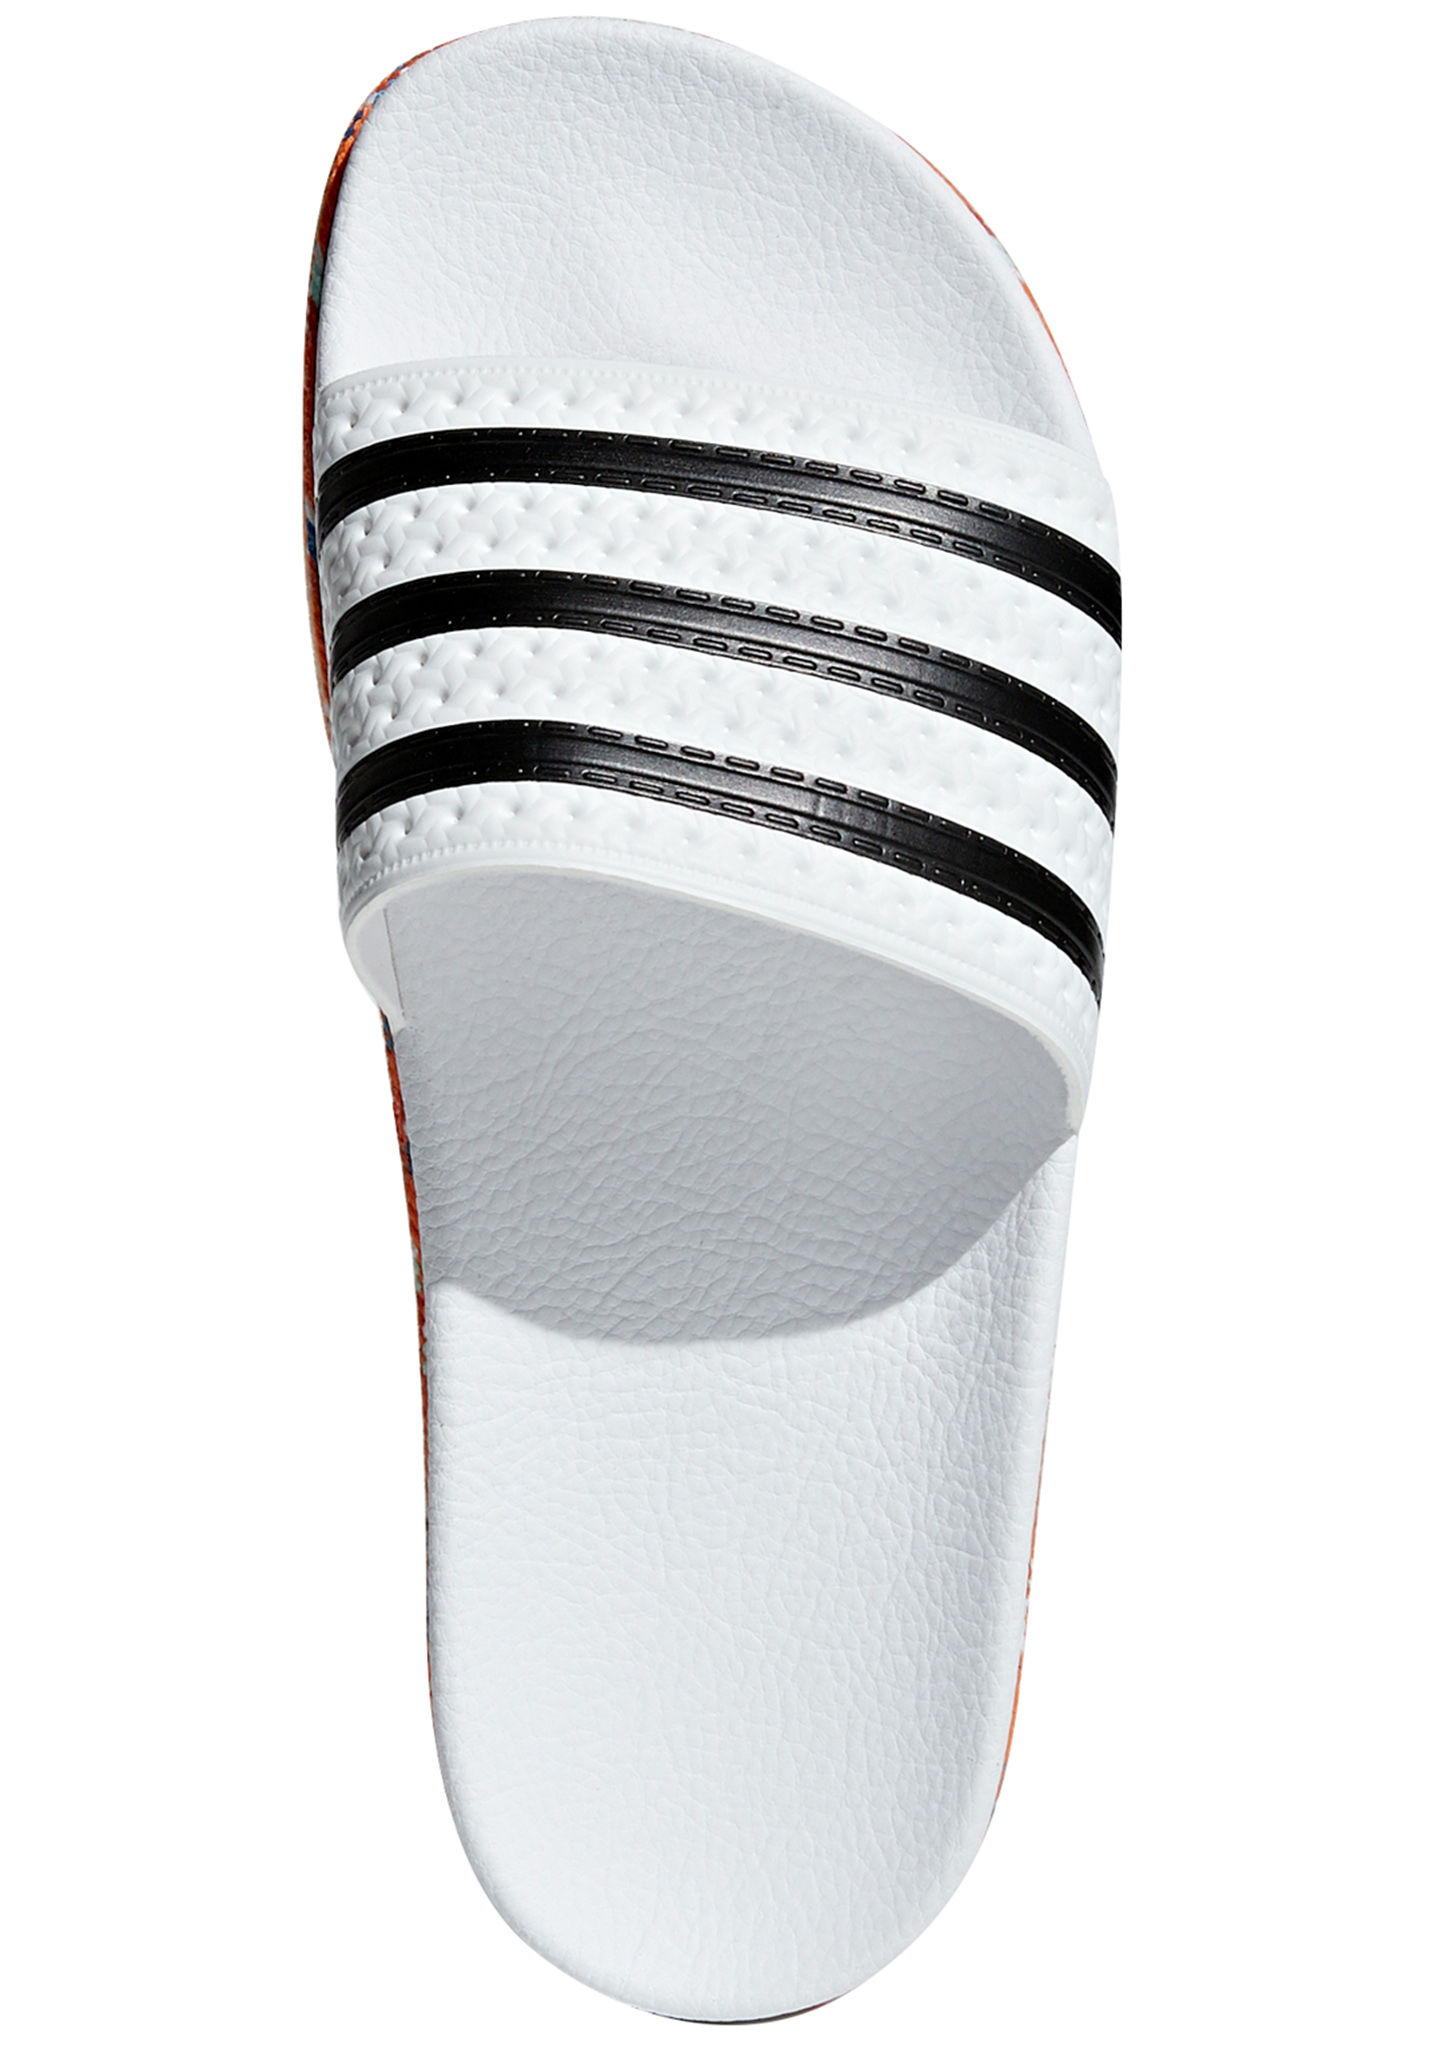 58a733fb70fef9 ADIDAS ORIGINALS Adilette New Bold - Sandals for Women - White - Planet  Sports